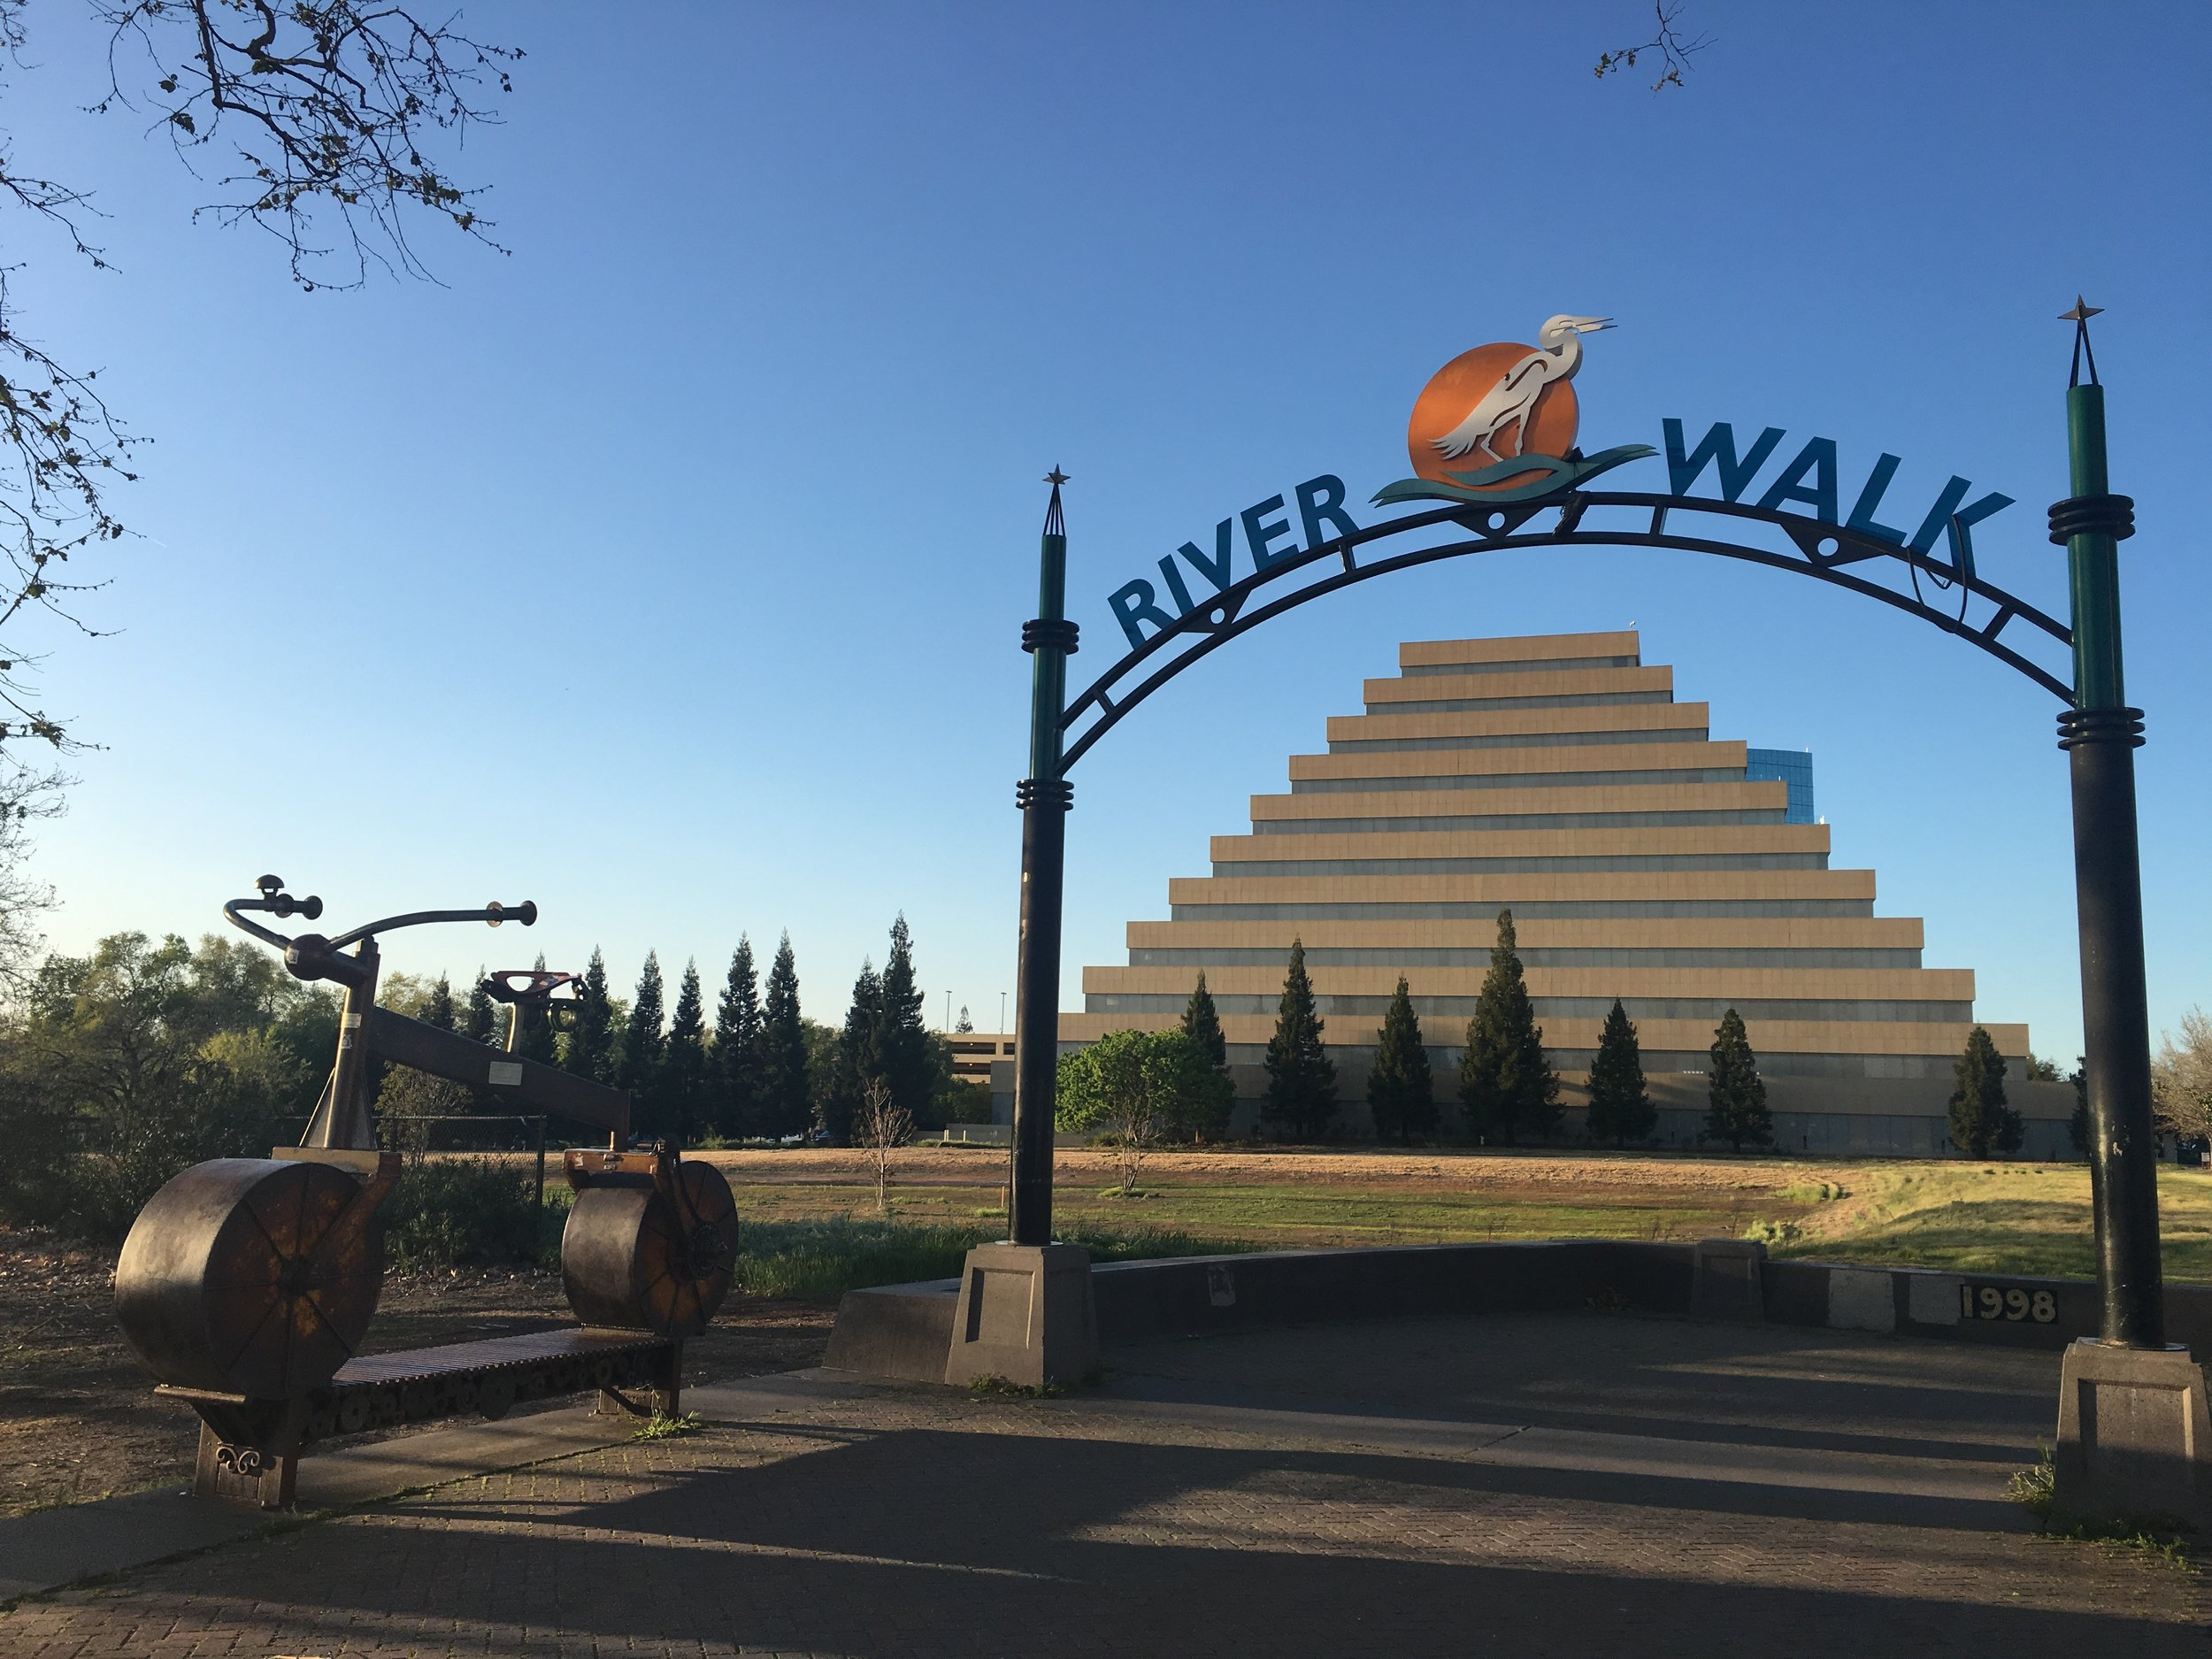 One of West Sacramento's earliest development projects after becoming incorporated was its River Walk completed in the mid-1990s.